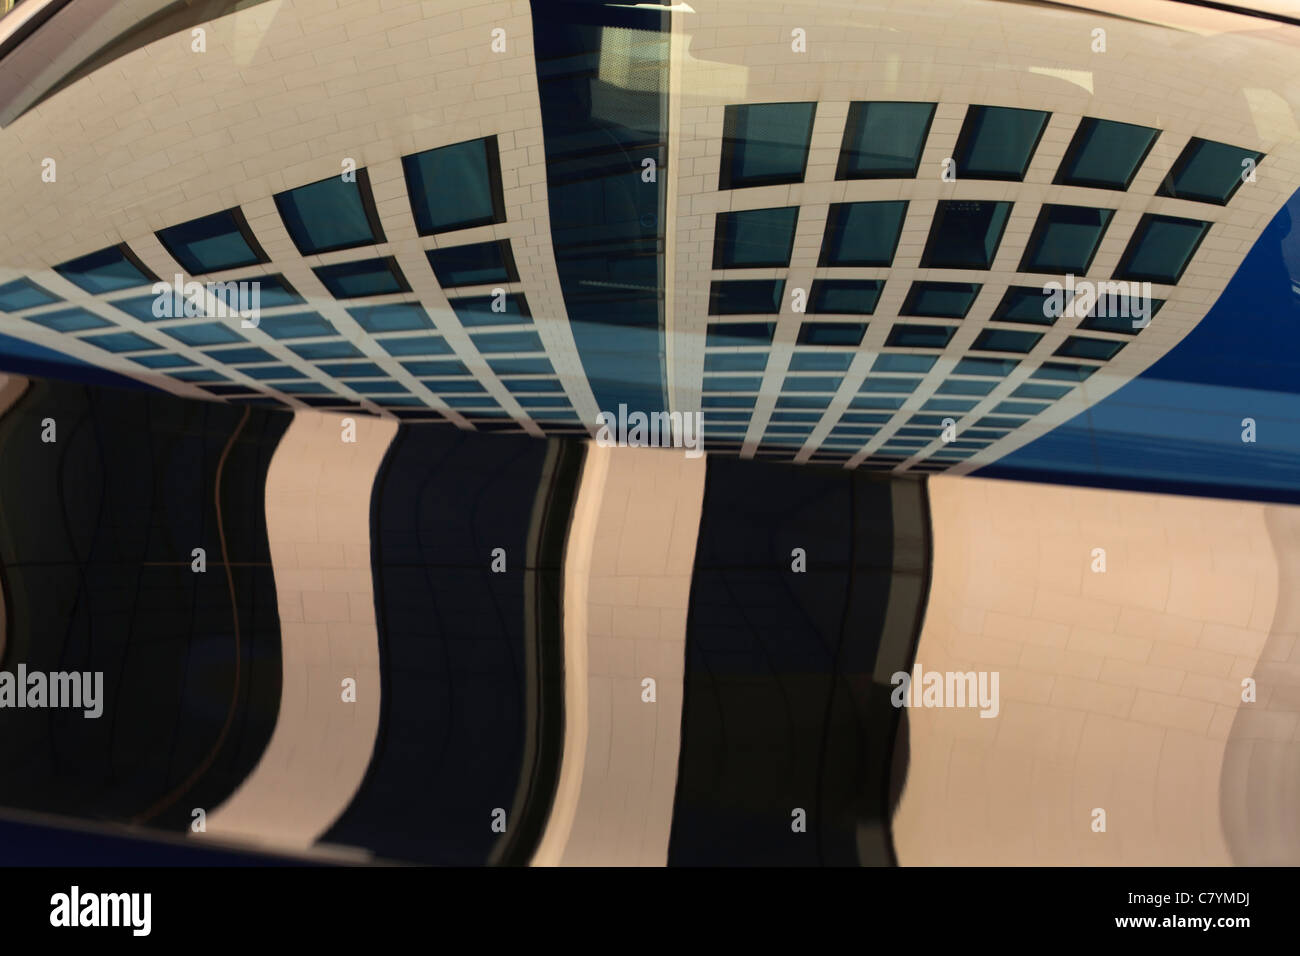 Abstract image of an office building reflected in the window of a car (BMW) in Frankfurt am Main. Stock Photo